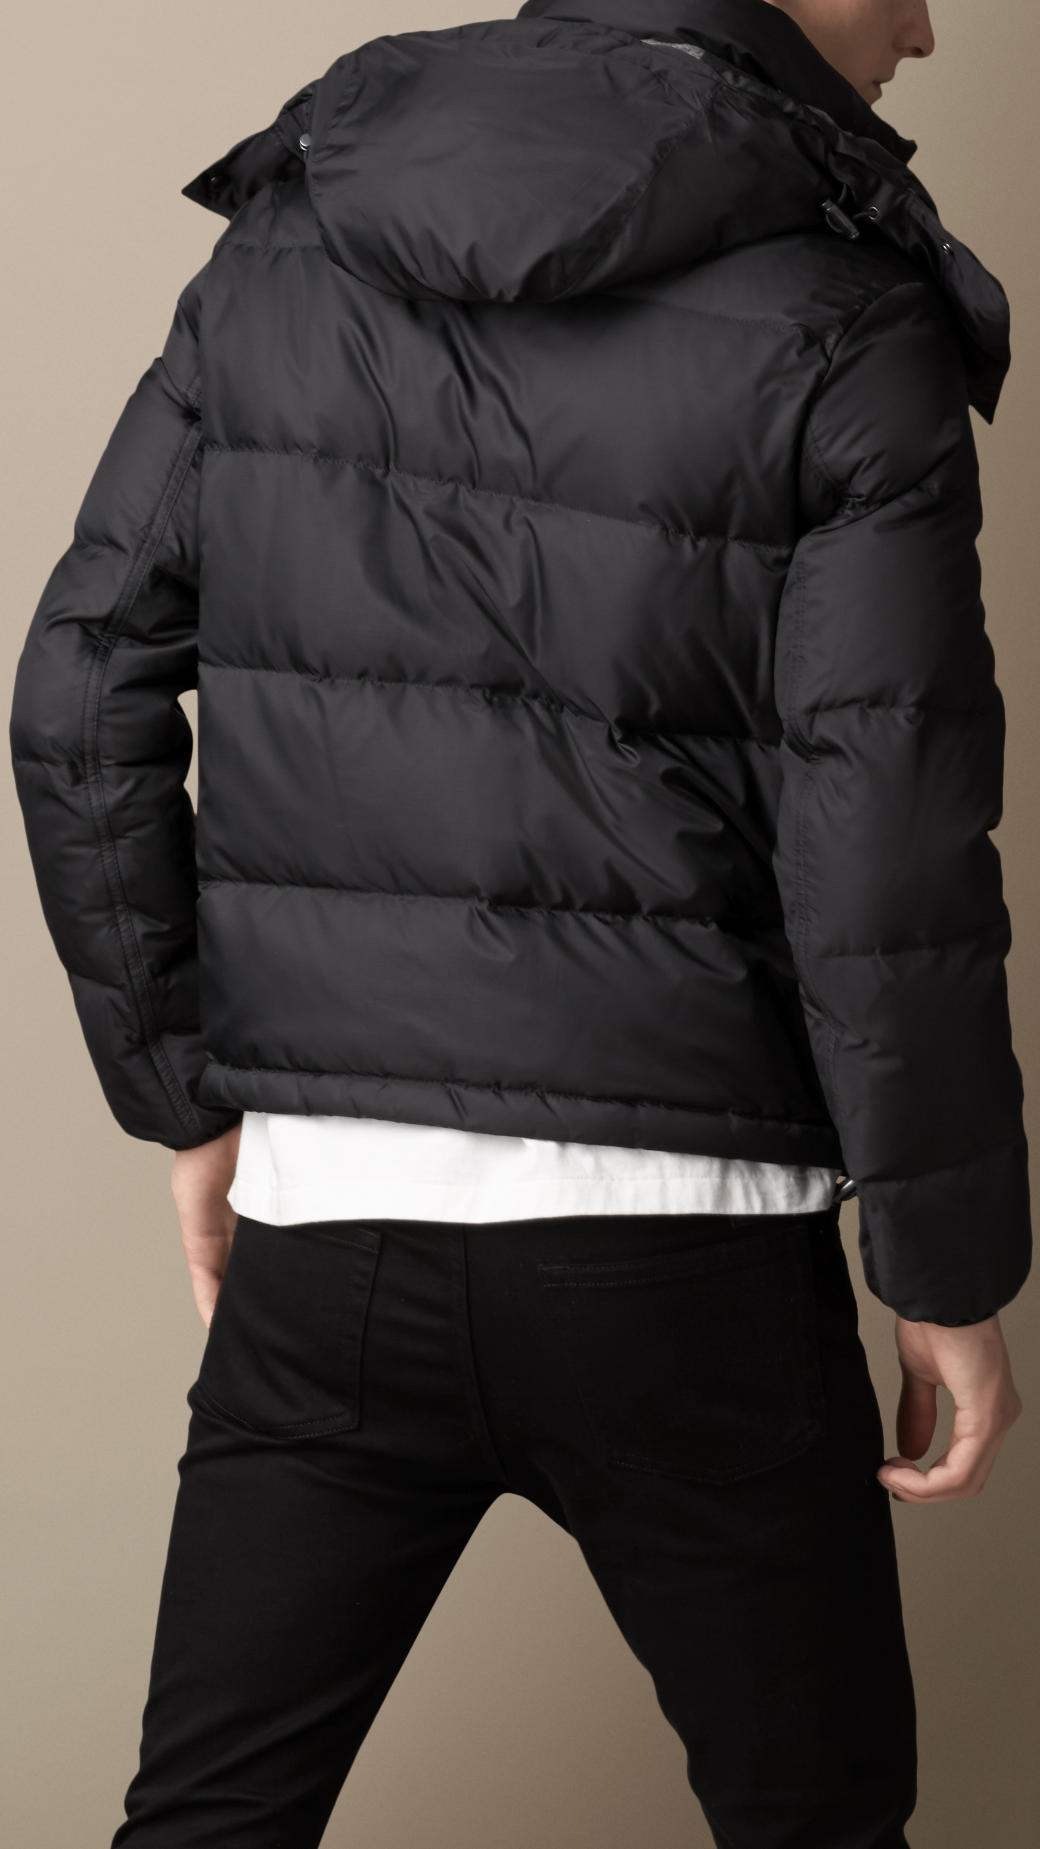 Lyst - Burberry Downfilled Hooded Puffer Jacket in Black